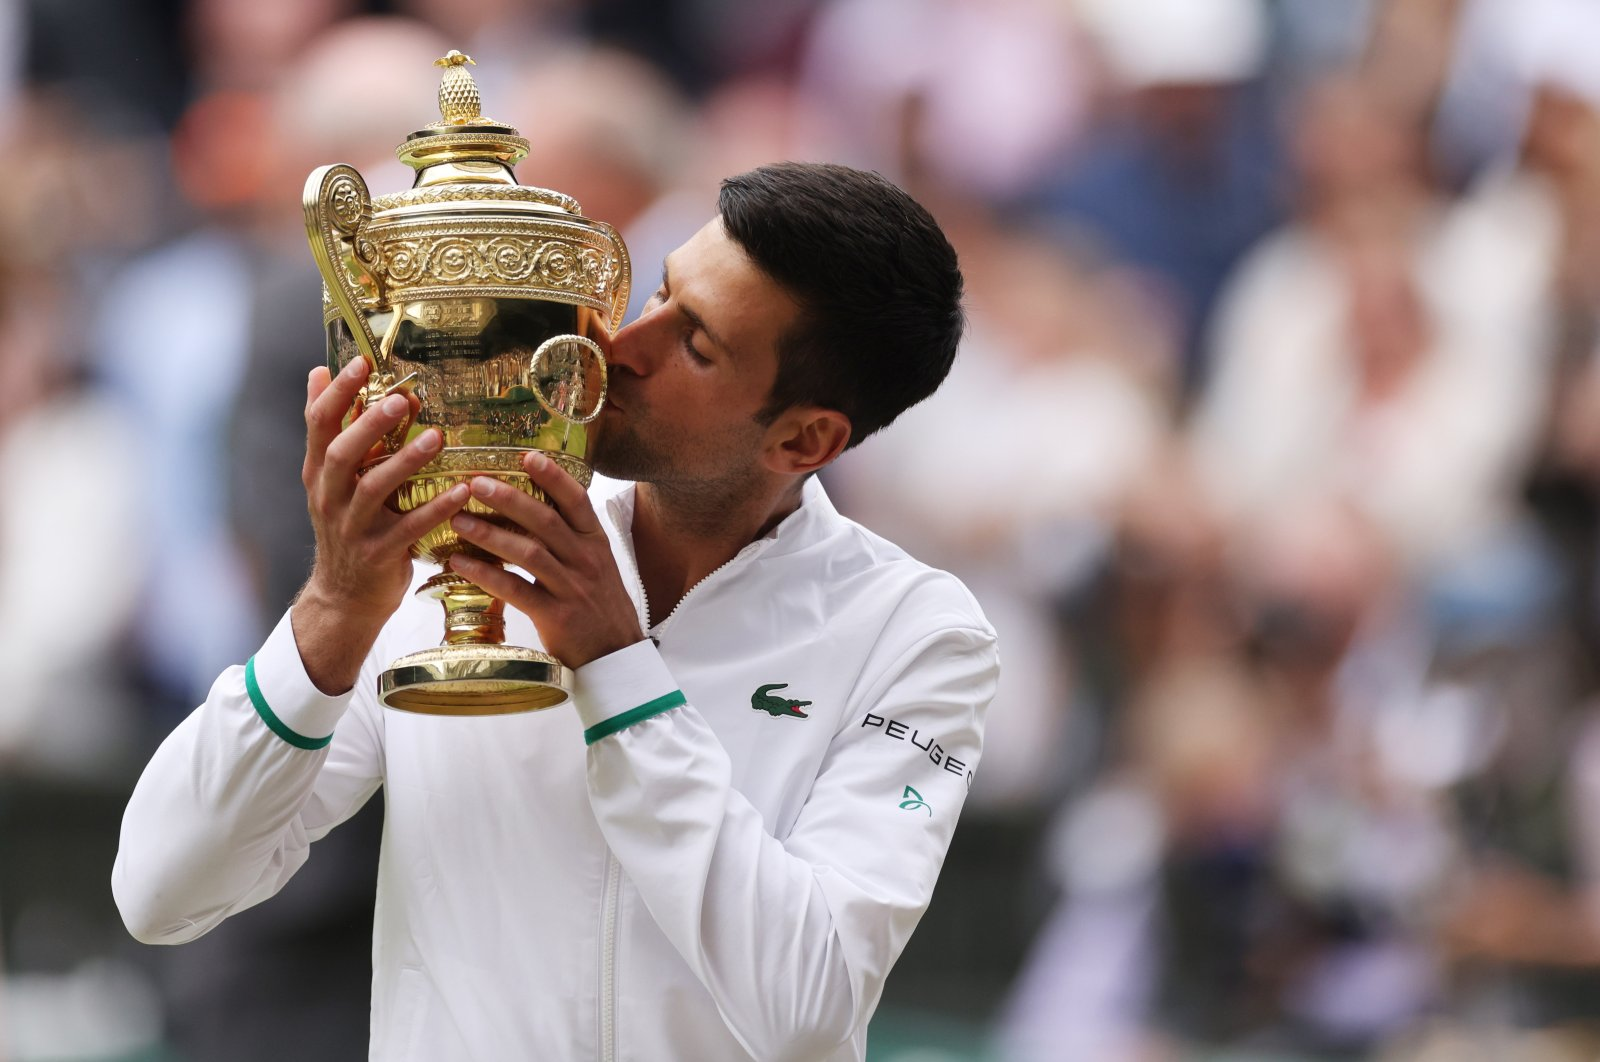 Serbia's Novak Djokovic celebrates with the trophy after winning his final match against Italy's Matteo Berrettini, All England Lawn Tennis and Croquet Club, London, U.K., July 11, 2021. (Reuters Photo)